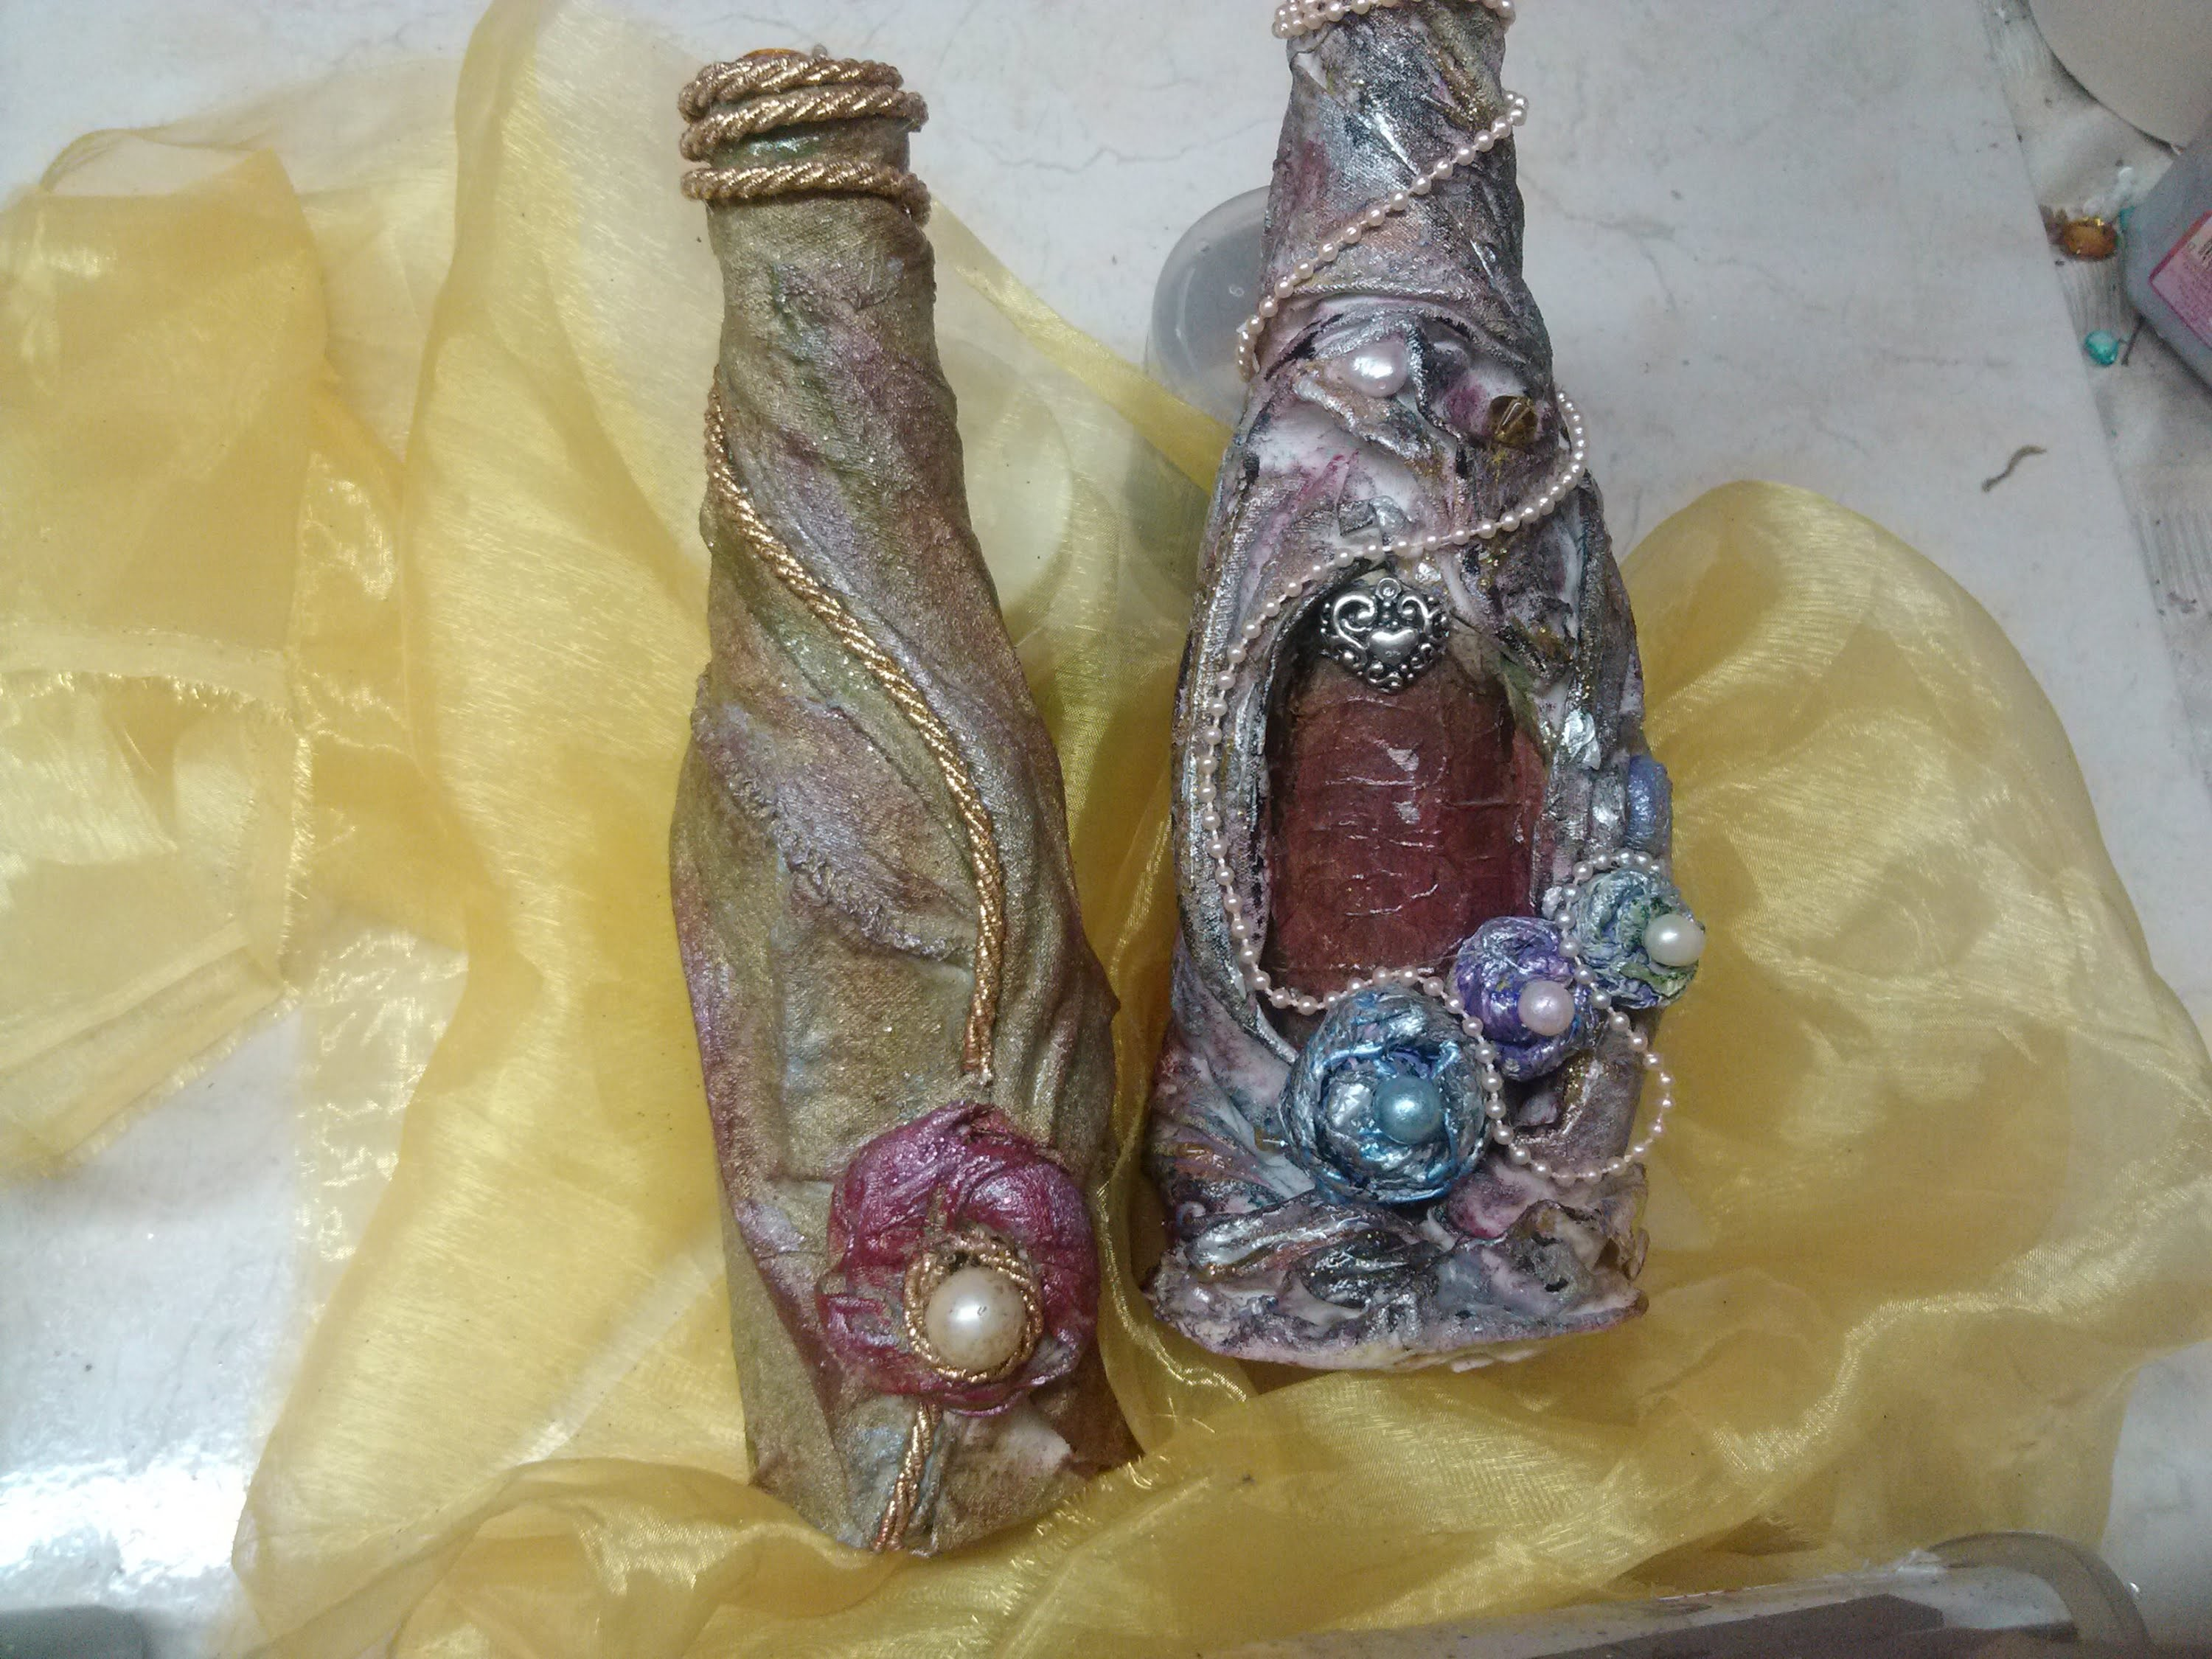 DIY Decorando botellas de vidrio. Glass bottles decorated